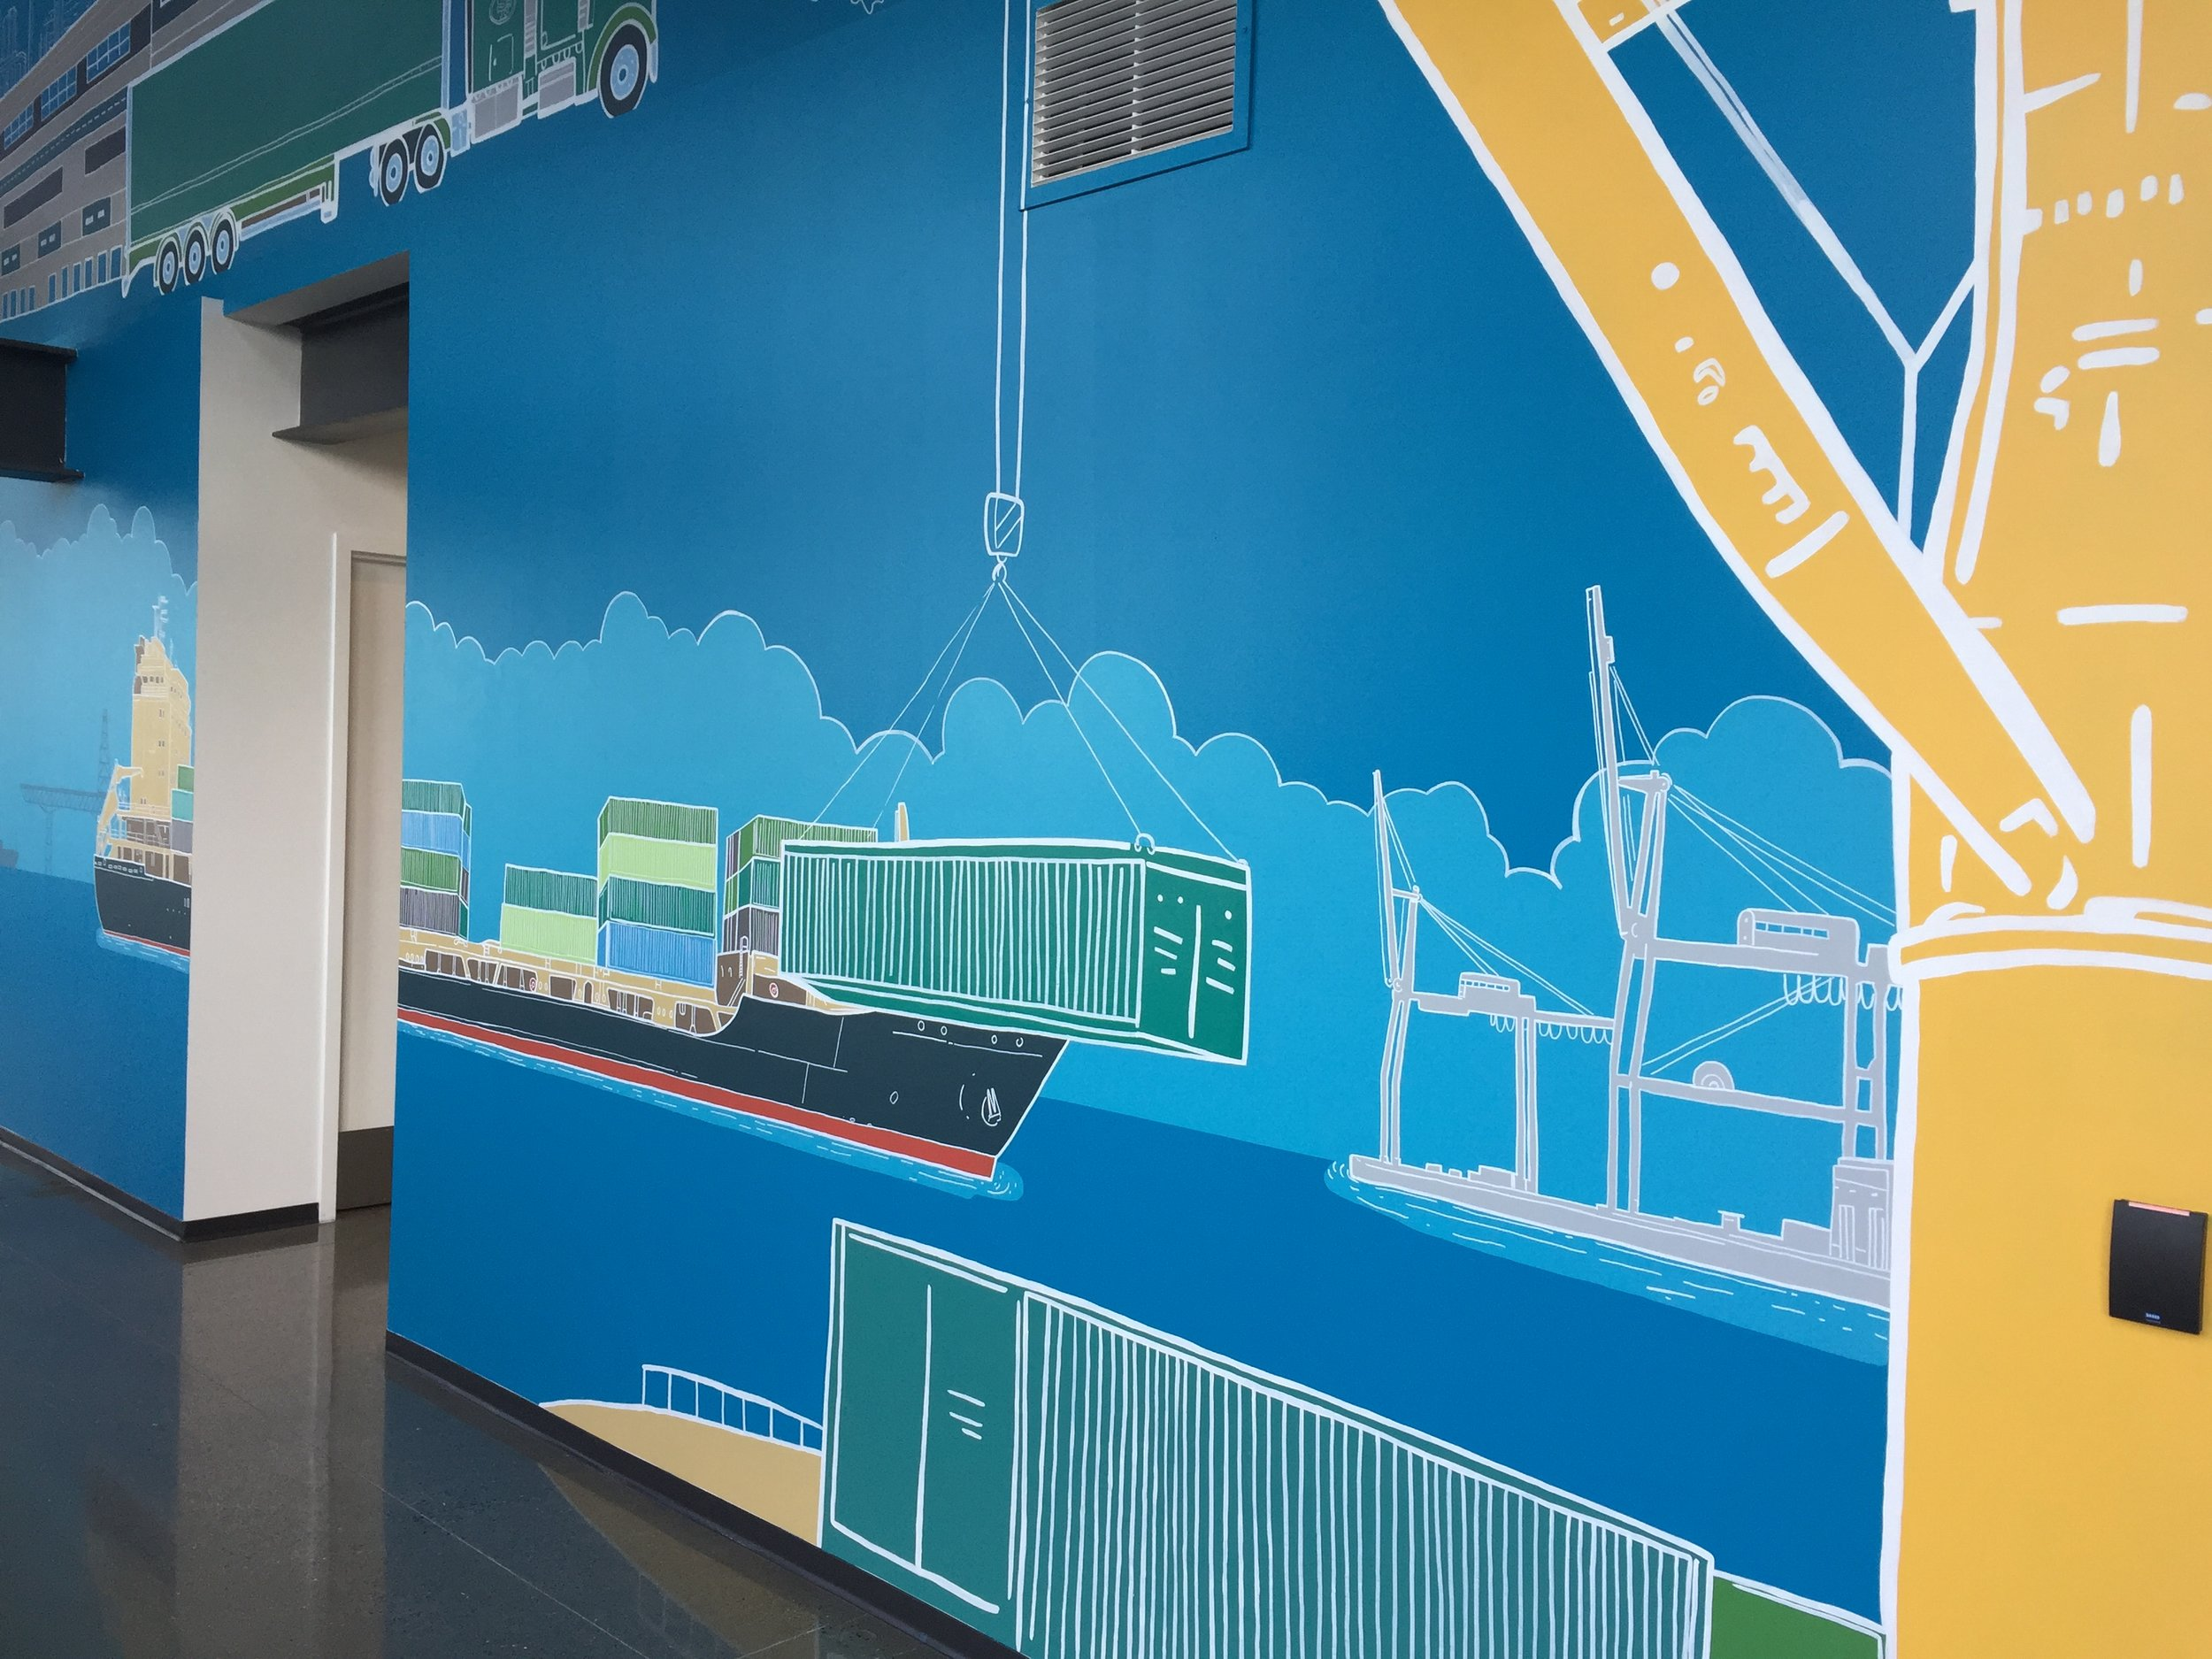 Office-commercial-mural-san-francisco-prologis-wall-and-wall-mural-company_003.jpeg